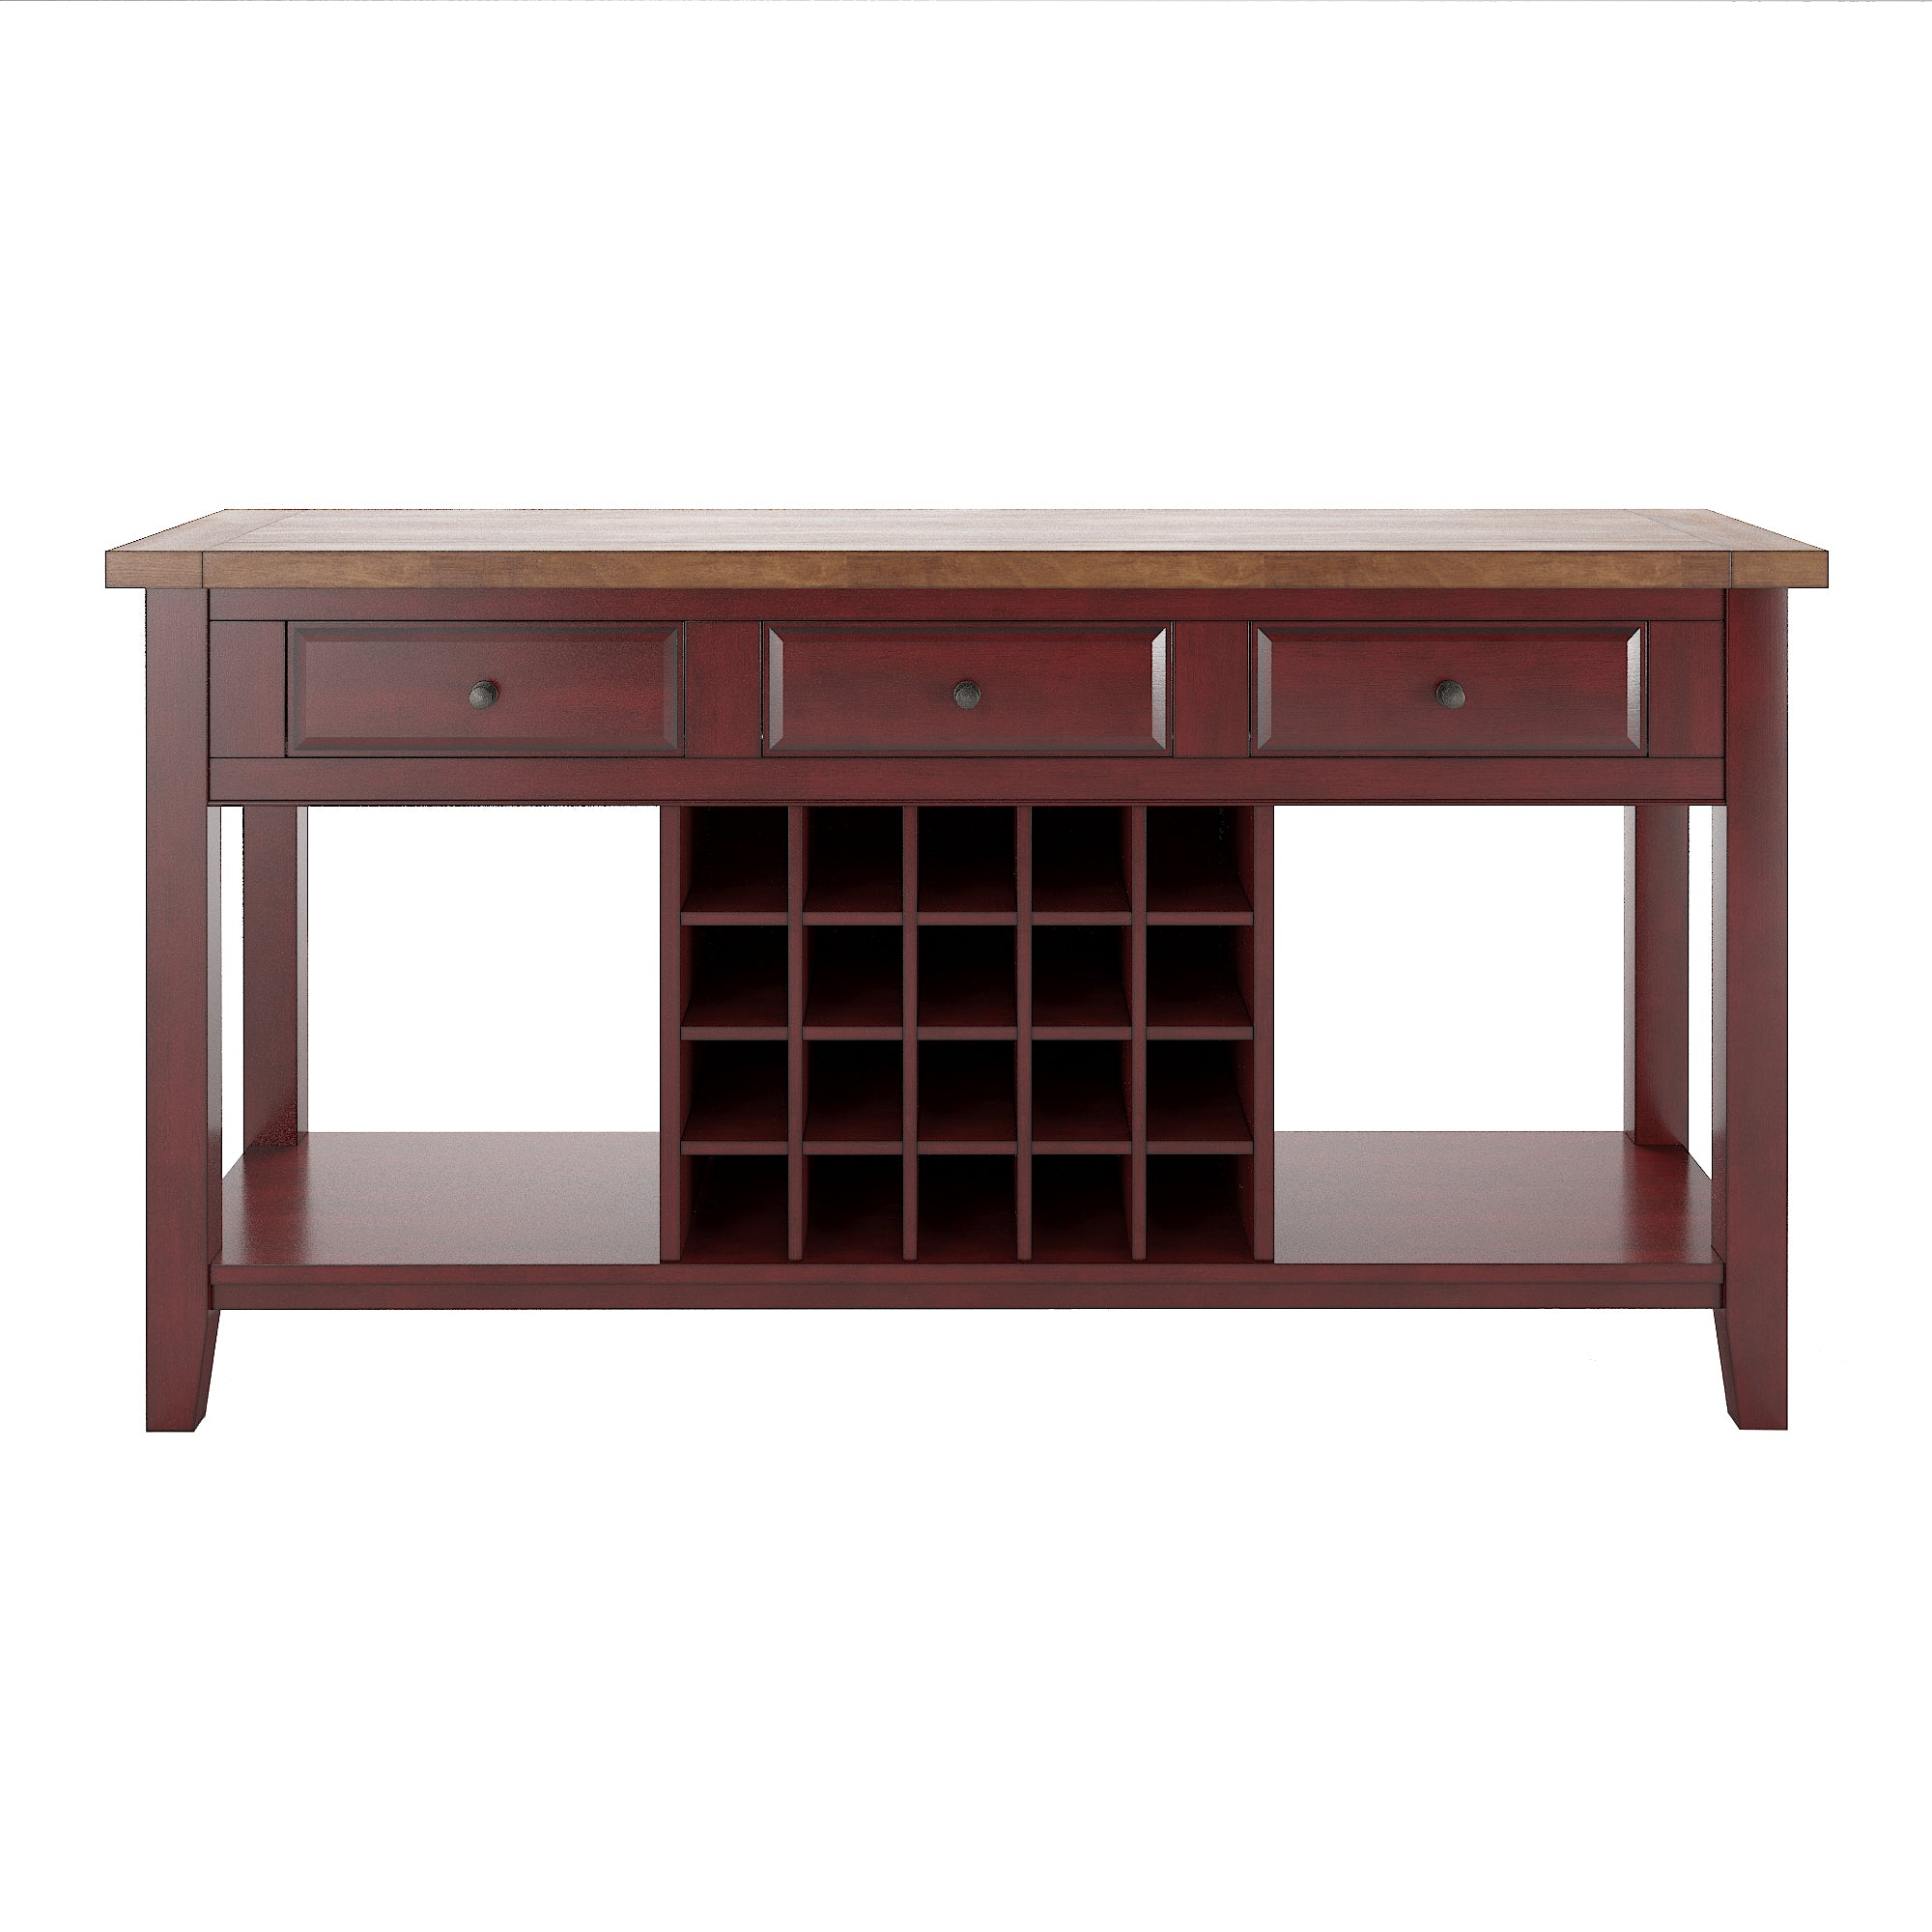 Two-Tone Wood Wine Rack Buffet Server - Oak top with antique berry base finish